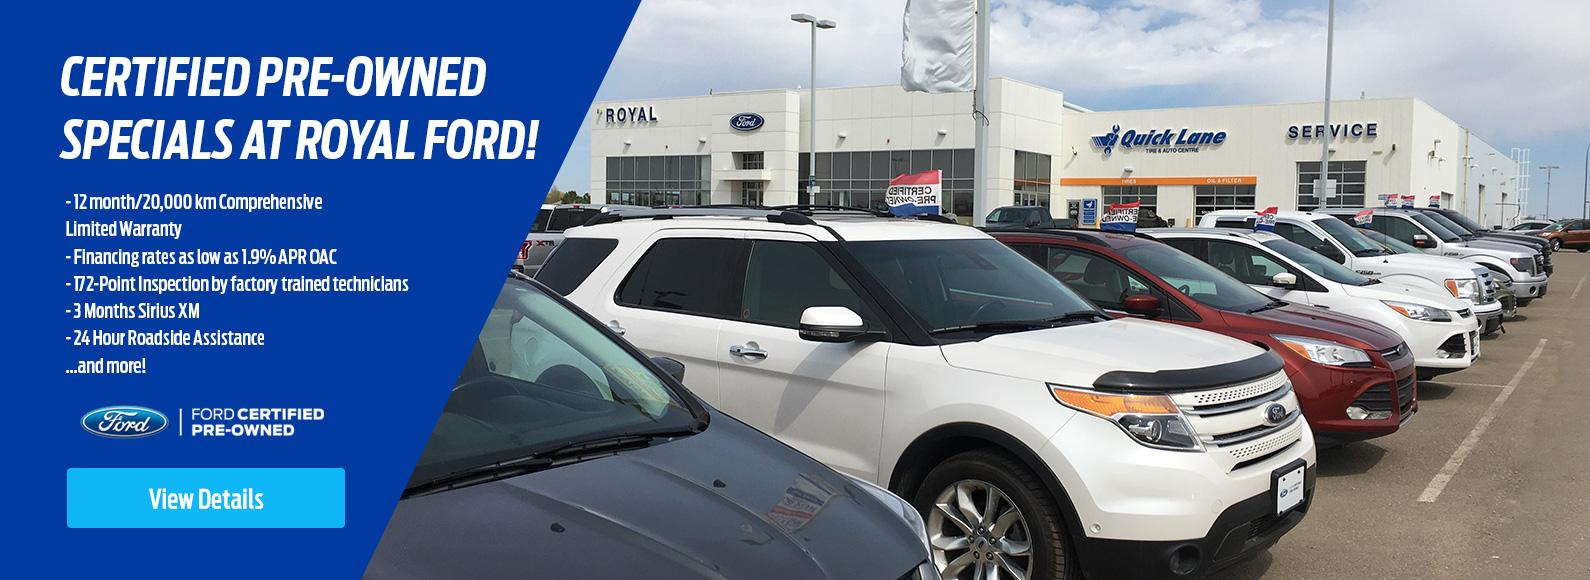 Certified pre-owned specials at Royal Ford